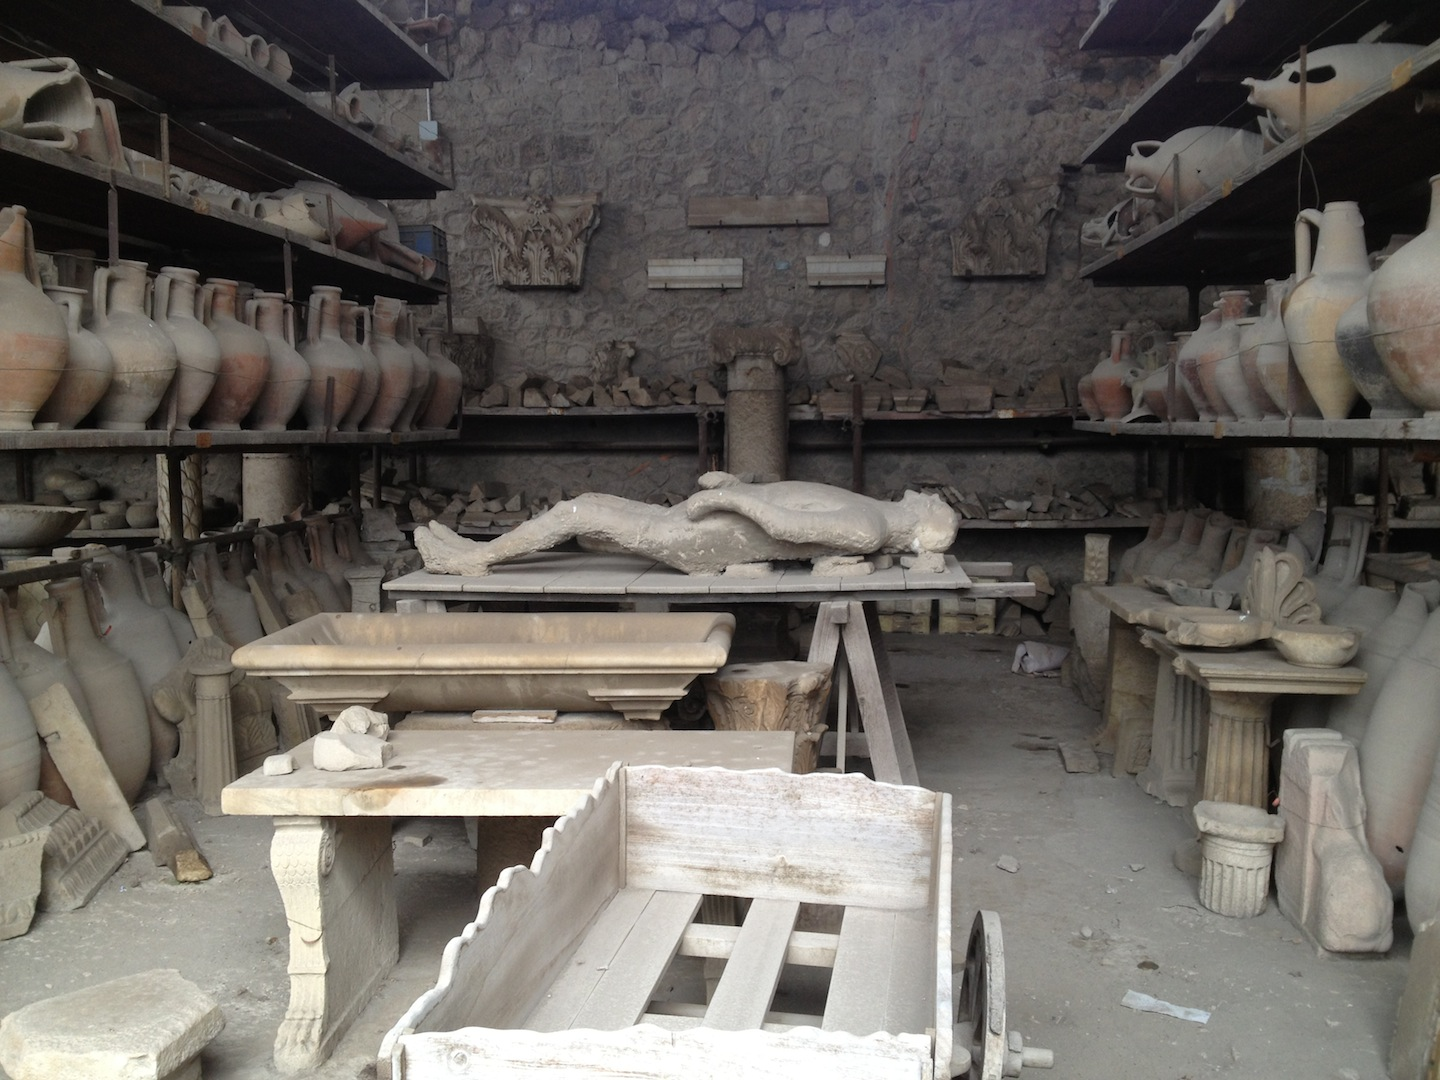 Pompeii-Iconography-jessewaugh.com-78-Ash-Body.jpg